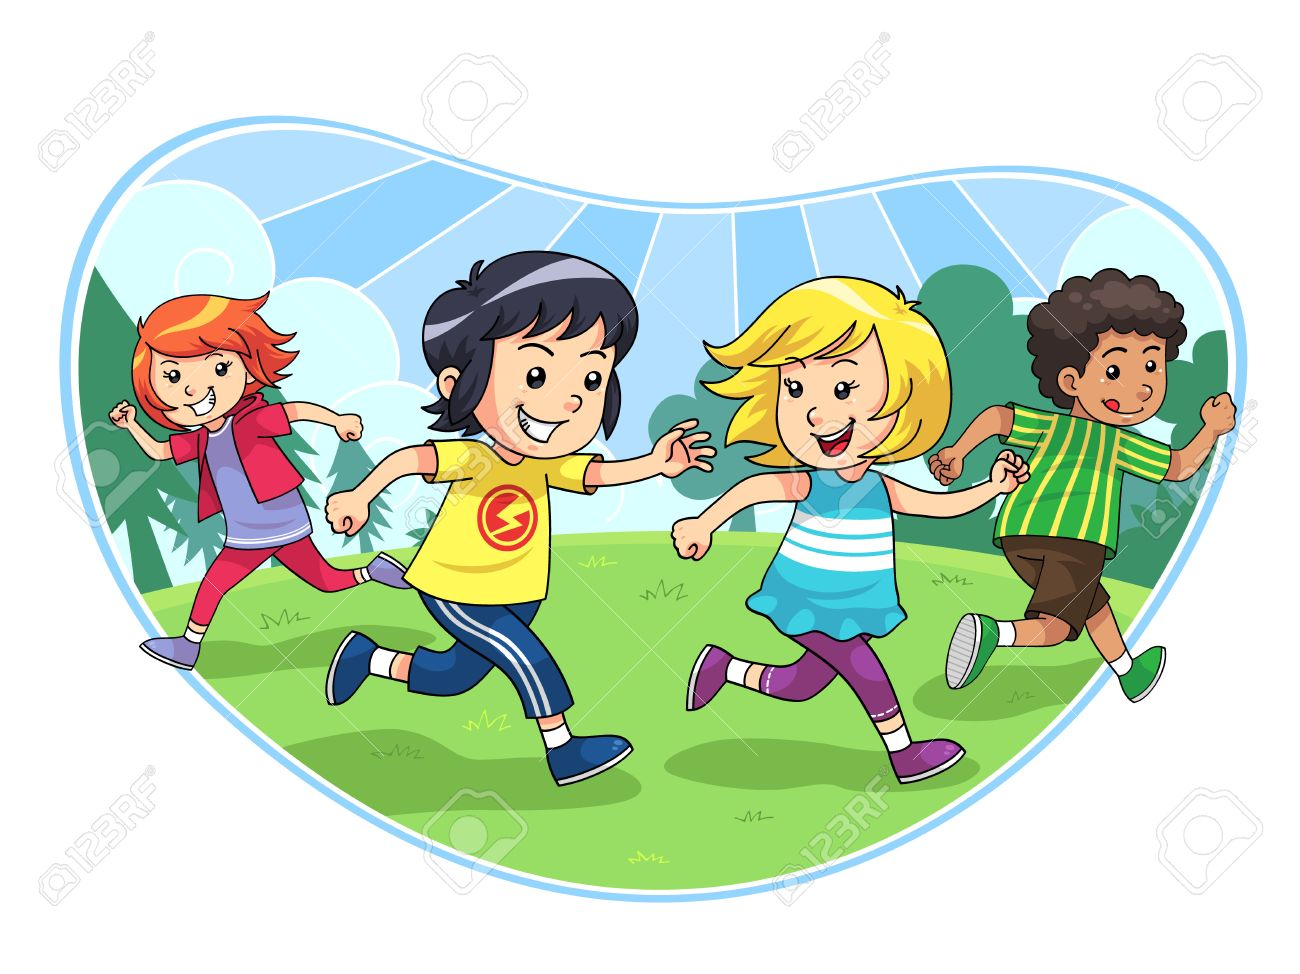 Catch And Run Play A group of children playing catch and run Stock Vector - 22719383